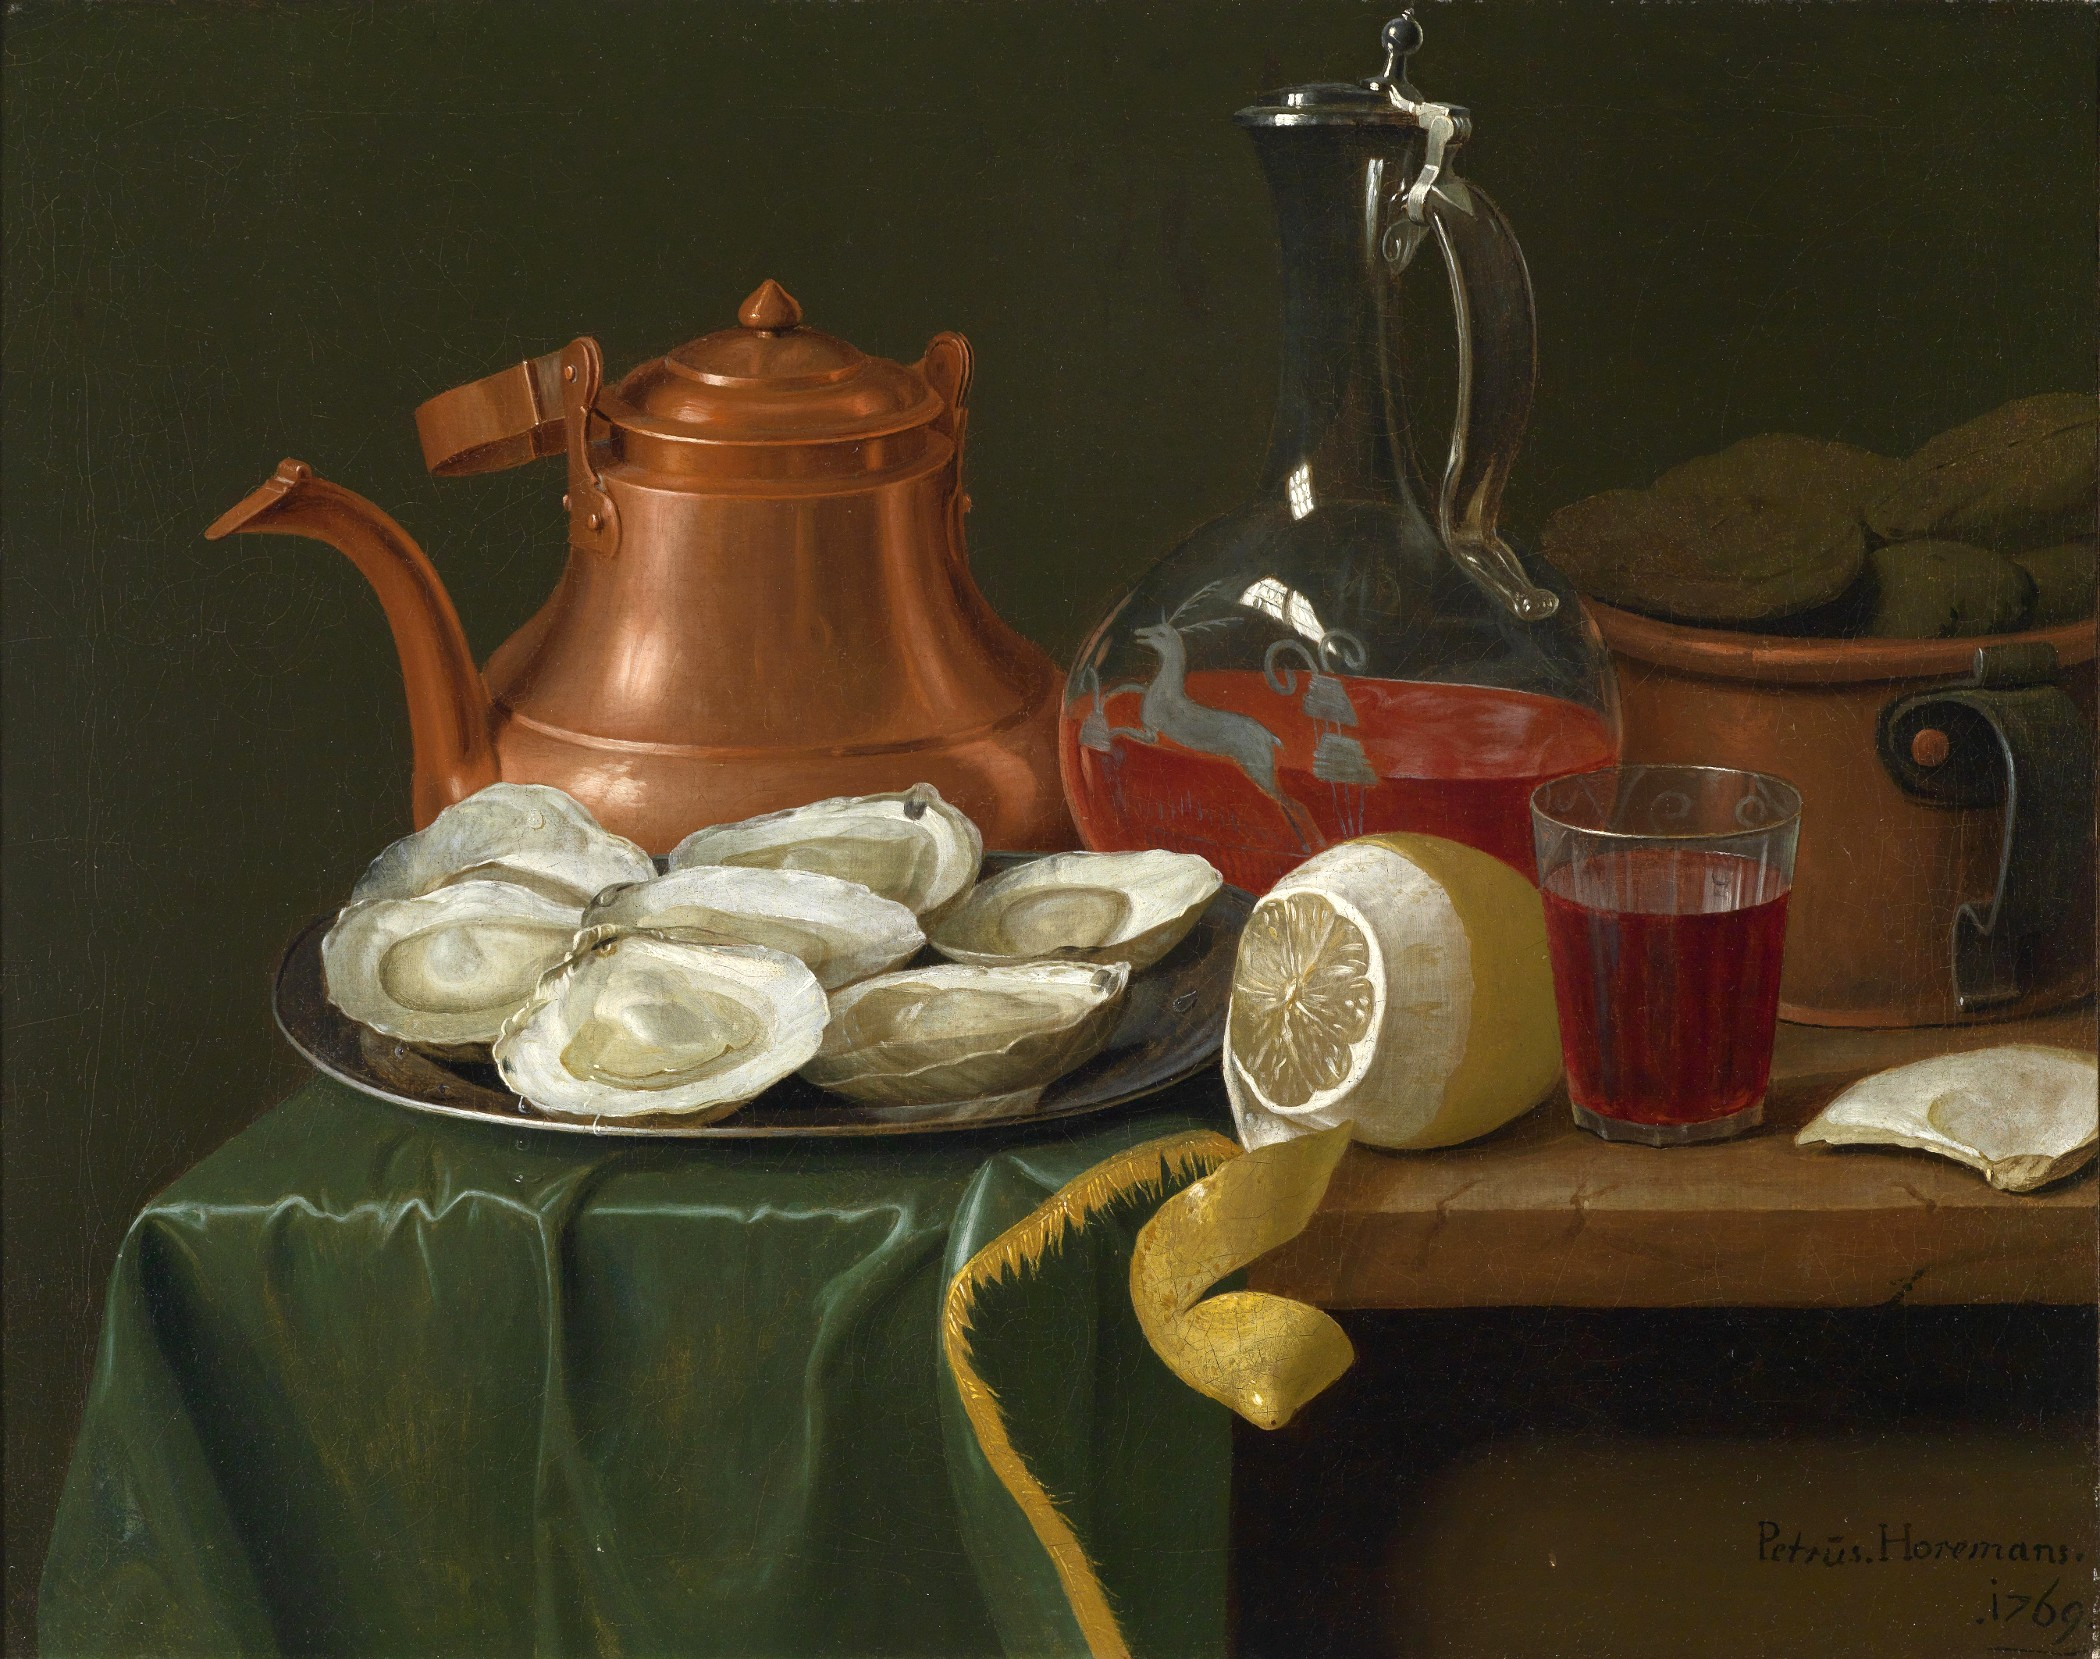 A Still Life with Oysters, Lemon, a Carafe of Wine and a Copper Jug, Peter Jacob Horemans